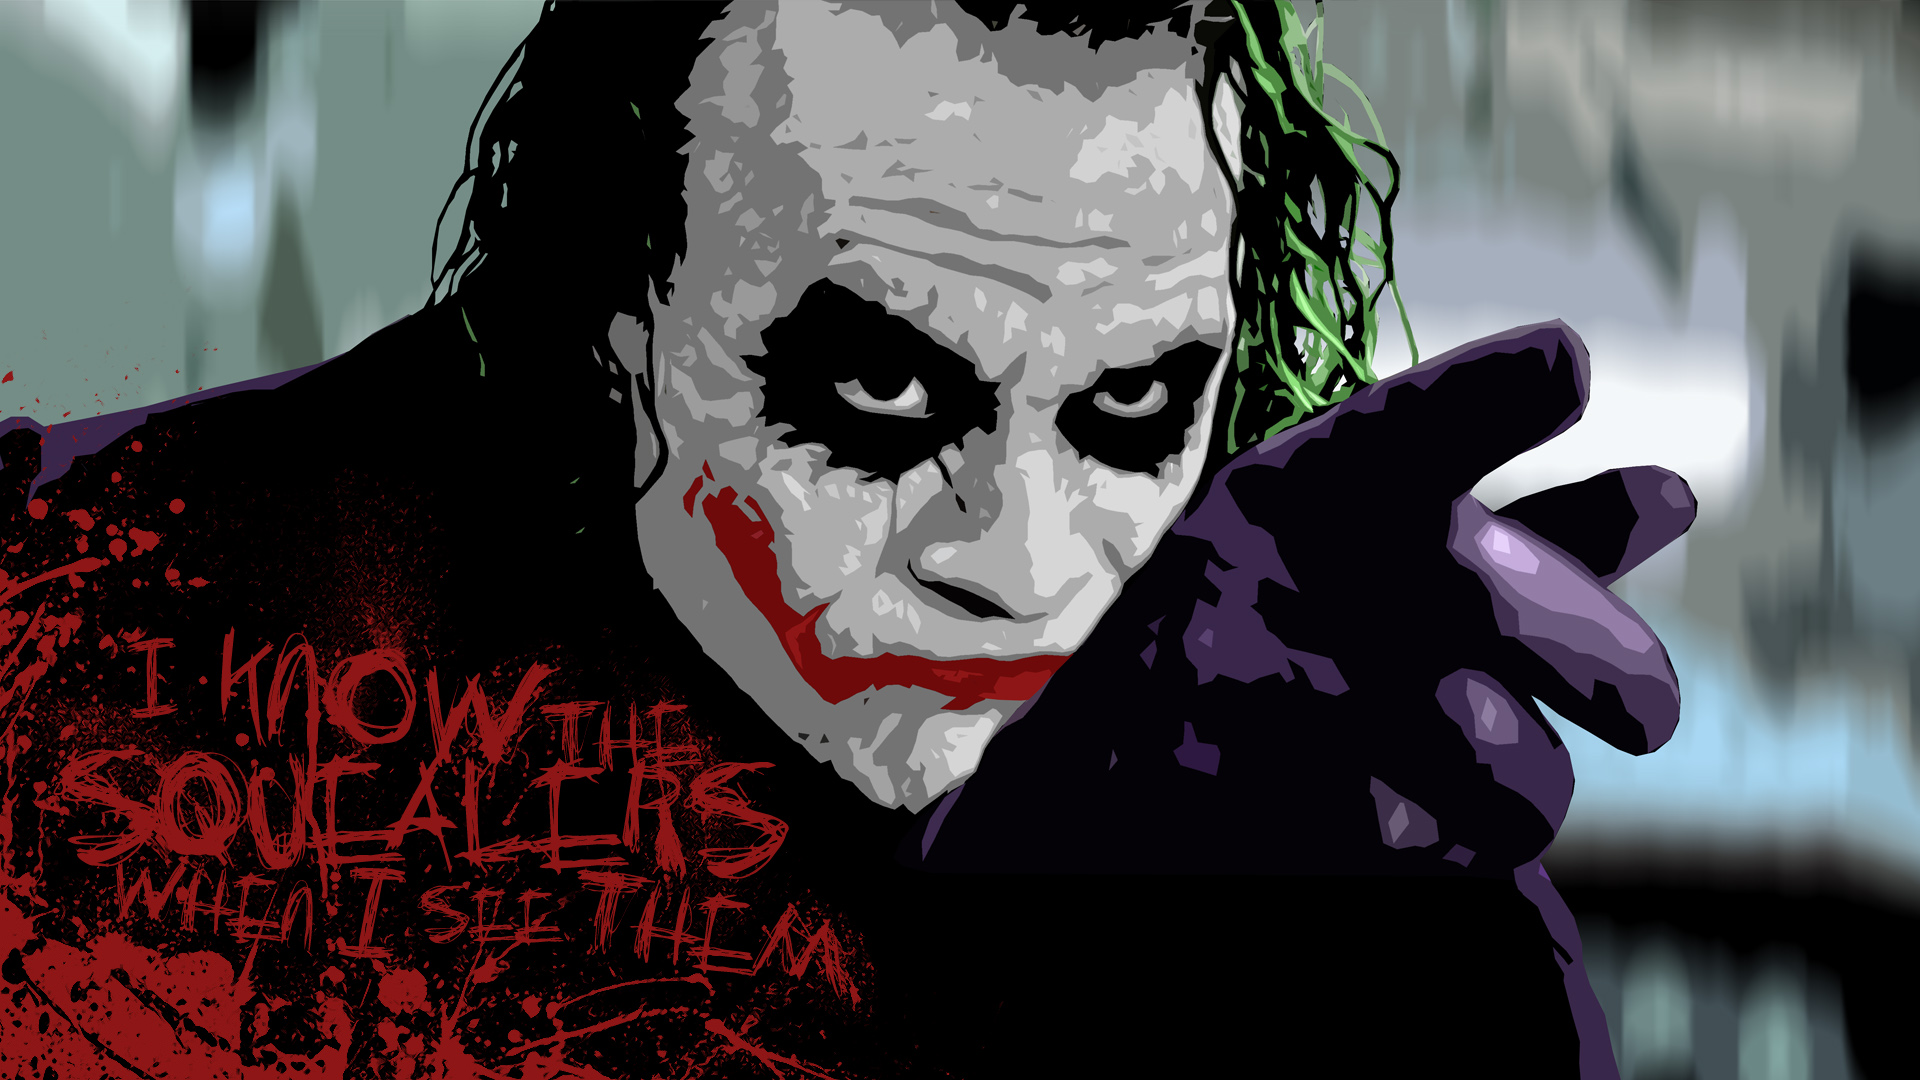 The Joker Images Joker Hd Wallpaper And Background Photos 28092759